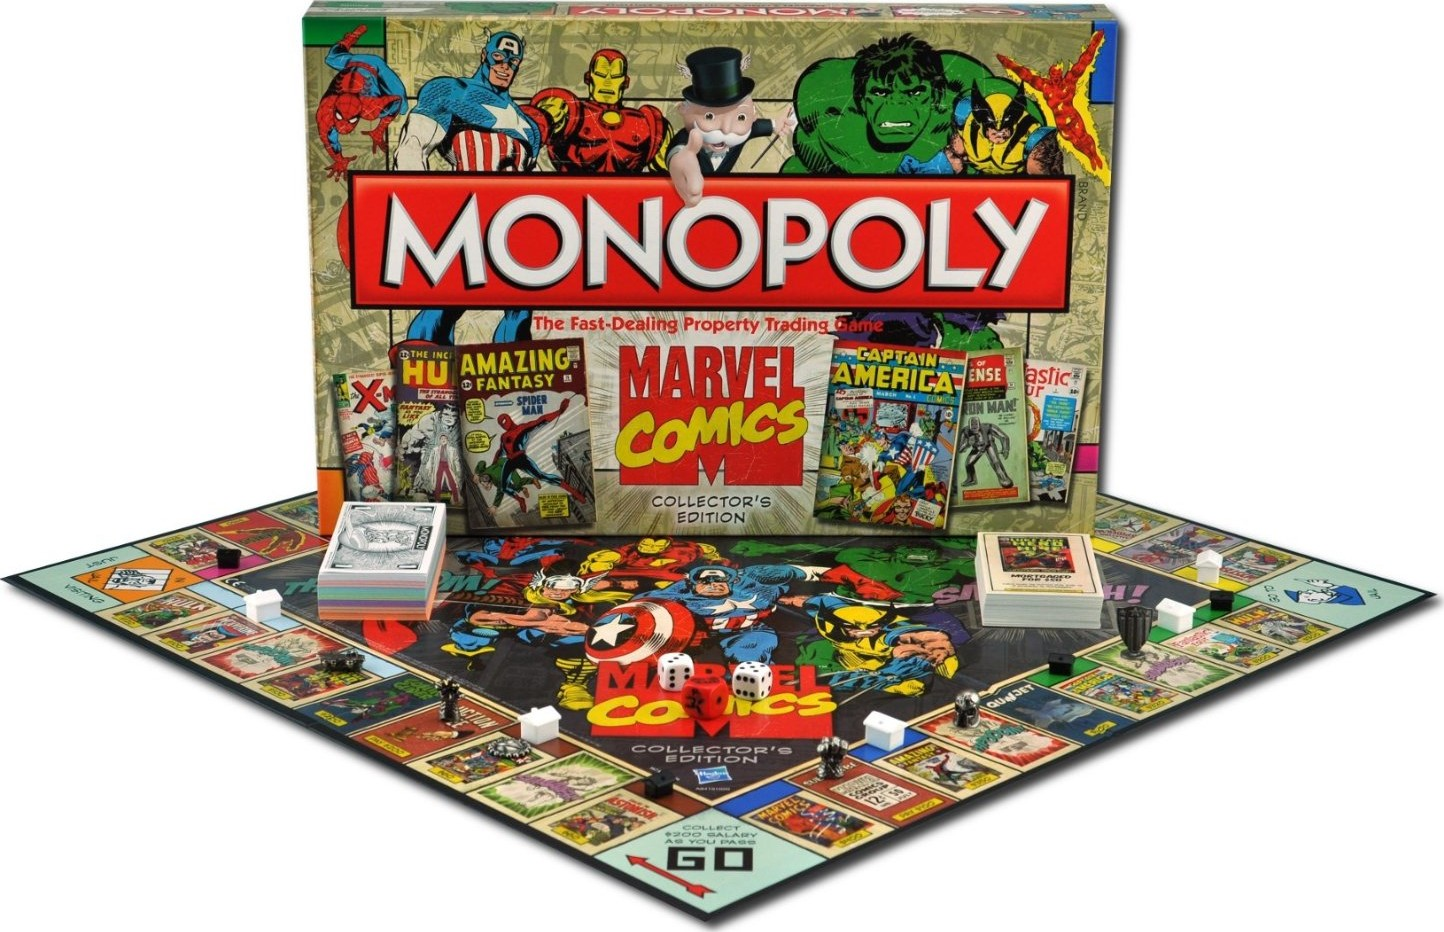 Seconde boîte du Monopoly Marvel Comics